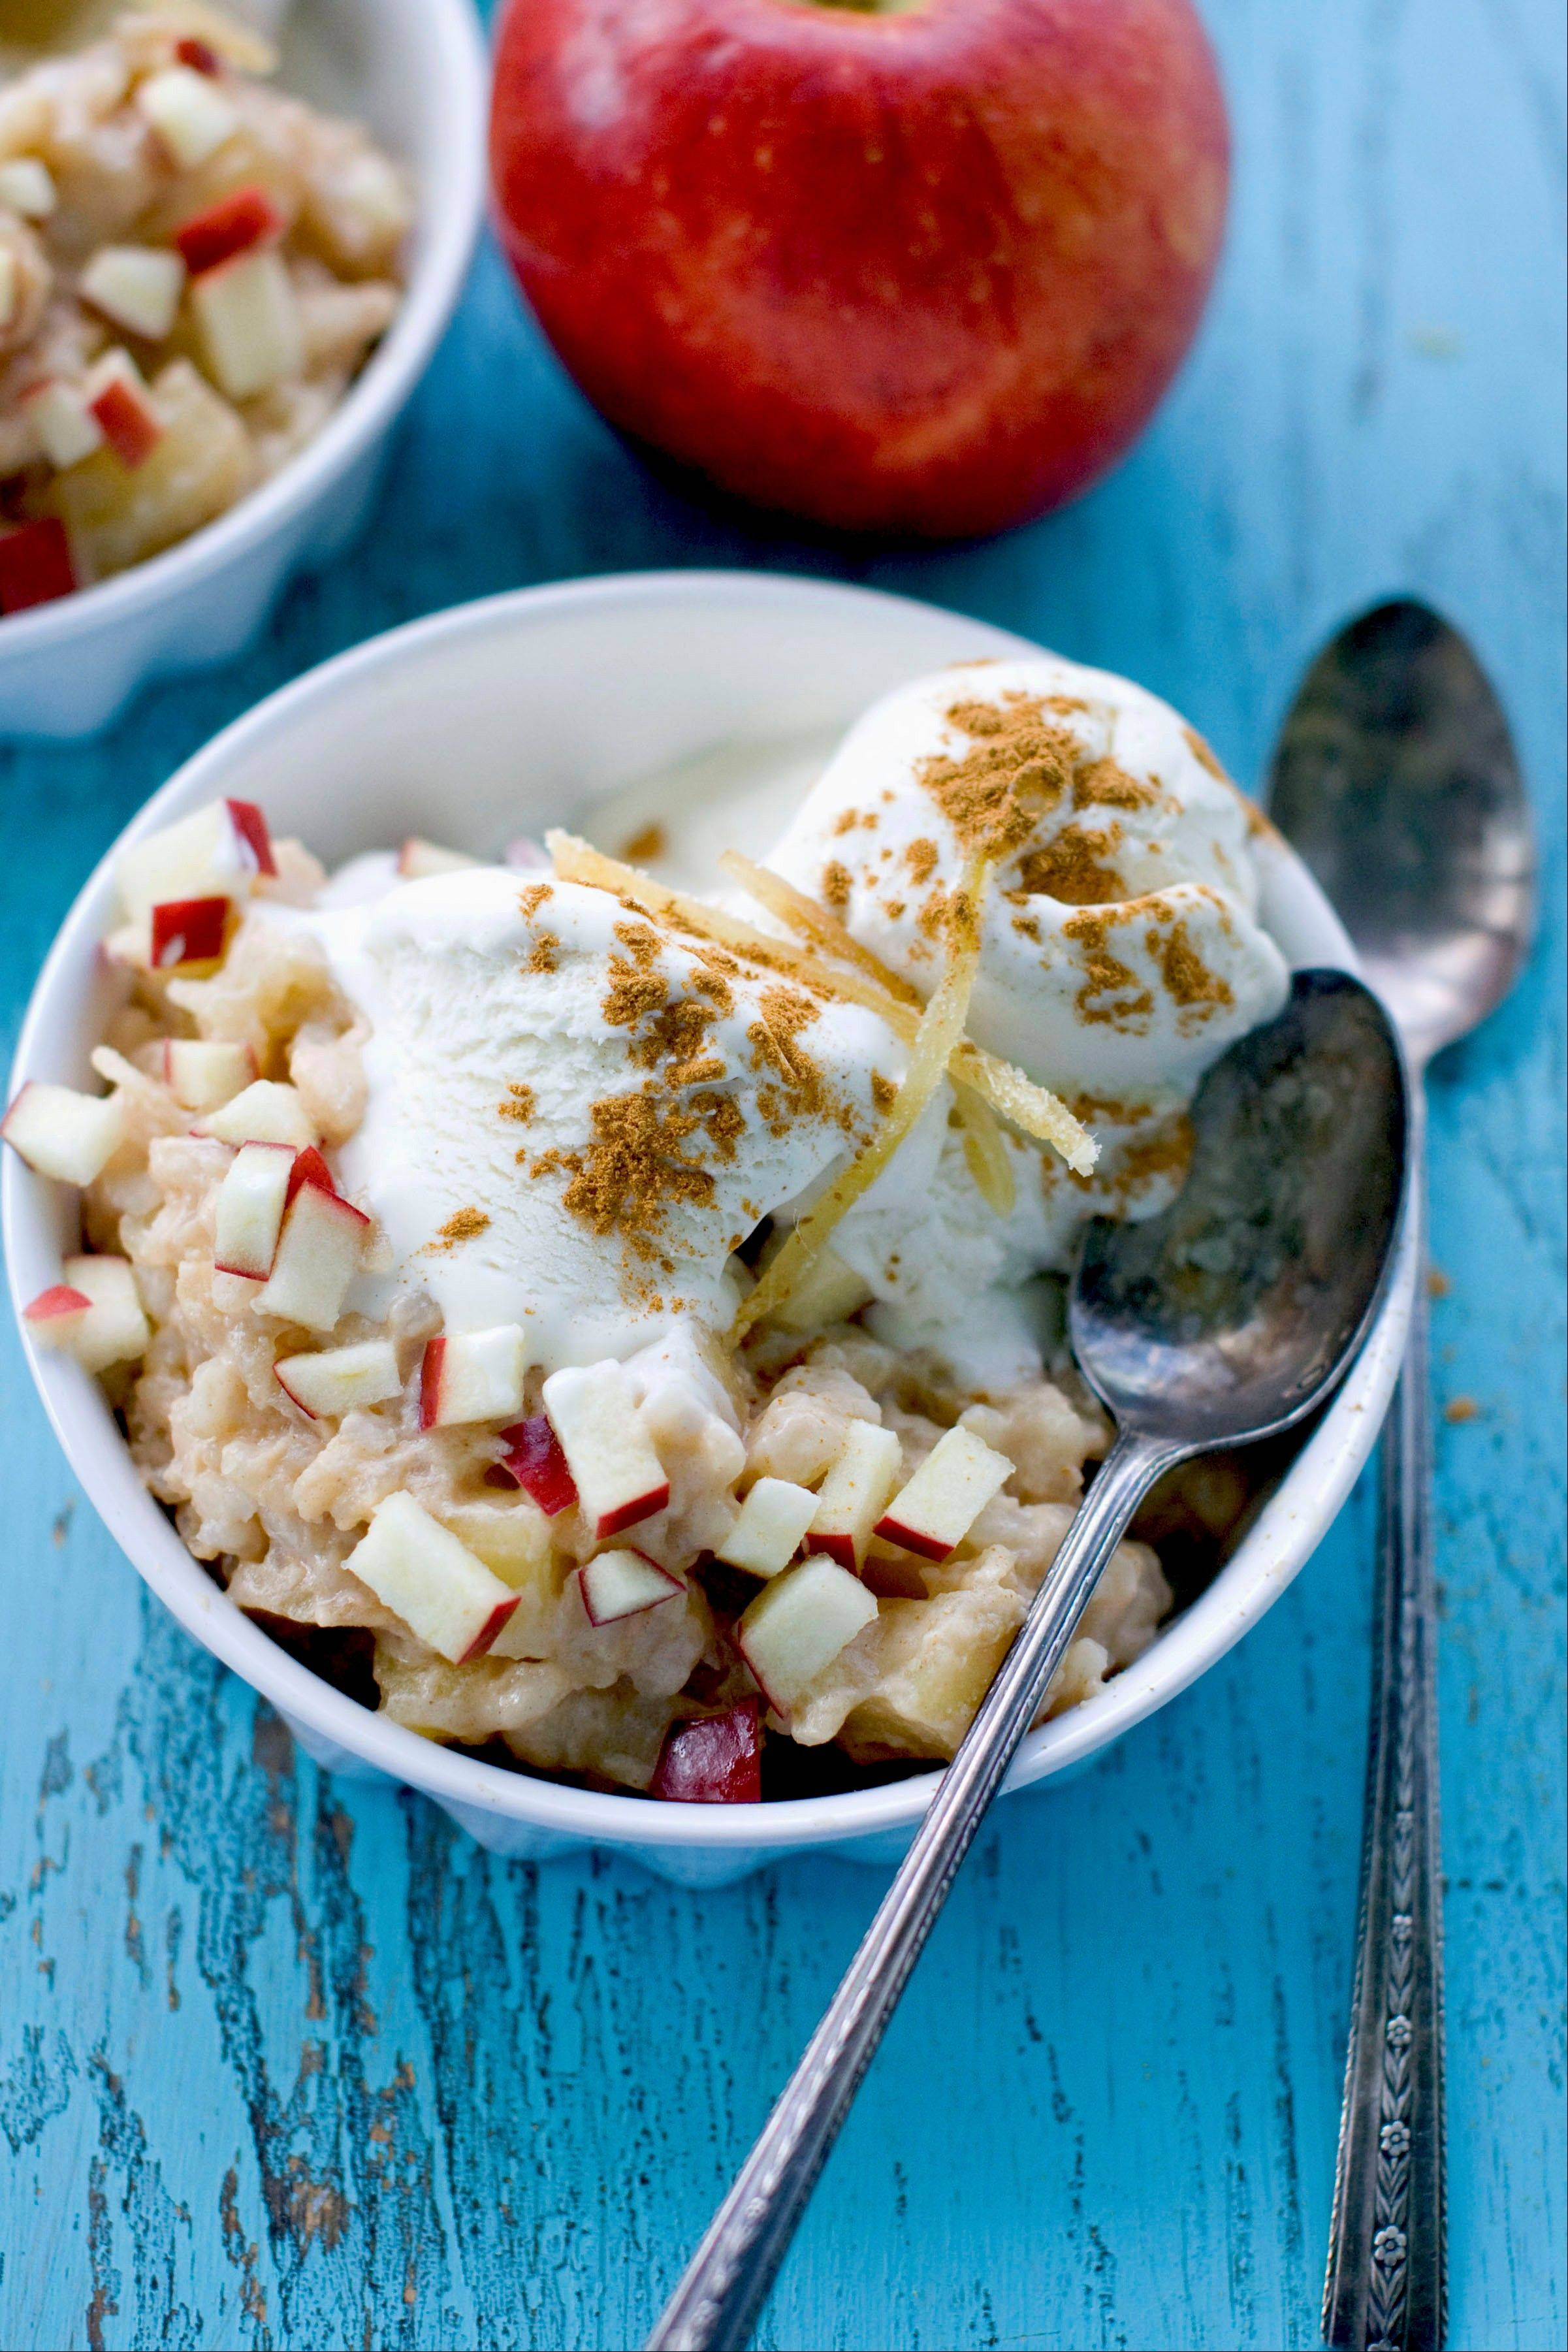 Arborio rice creates creamy texture for this Caramelized Apple Ginger Rice Pudding.